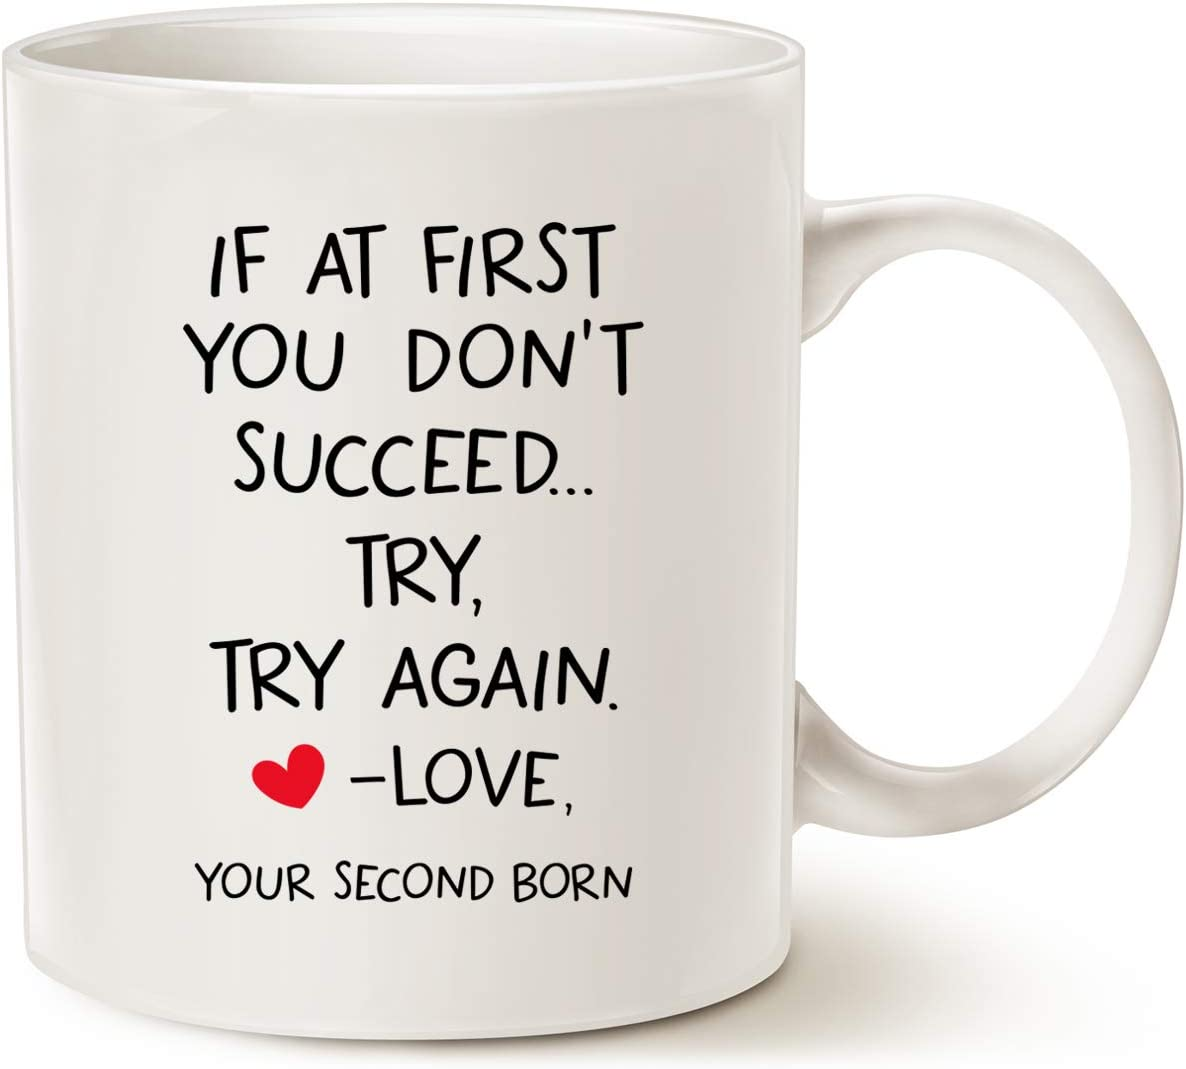 MAUAG Funny Quote Coffee Mug for Mom Dad, If At First You Don't Succeed. Try, Try Again. Love, Your Second Born Cups Best Birthday Christmas Gifts from Daughter Son, White 11 Oz